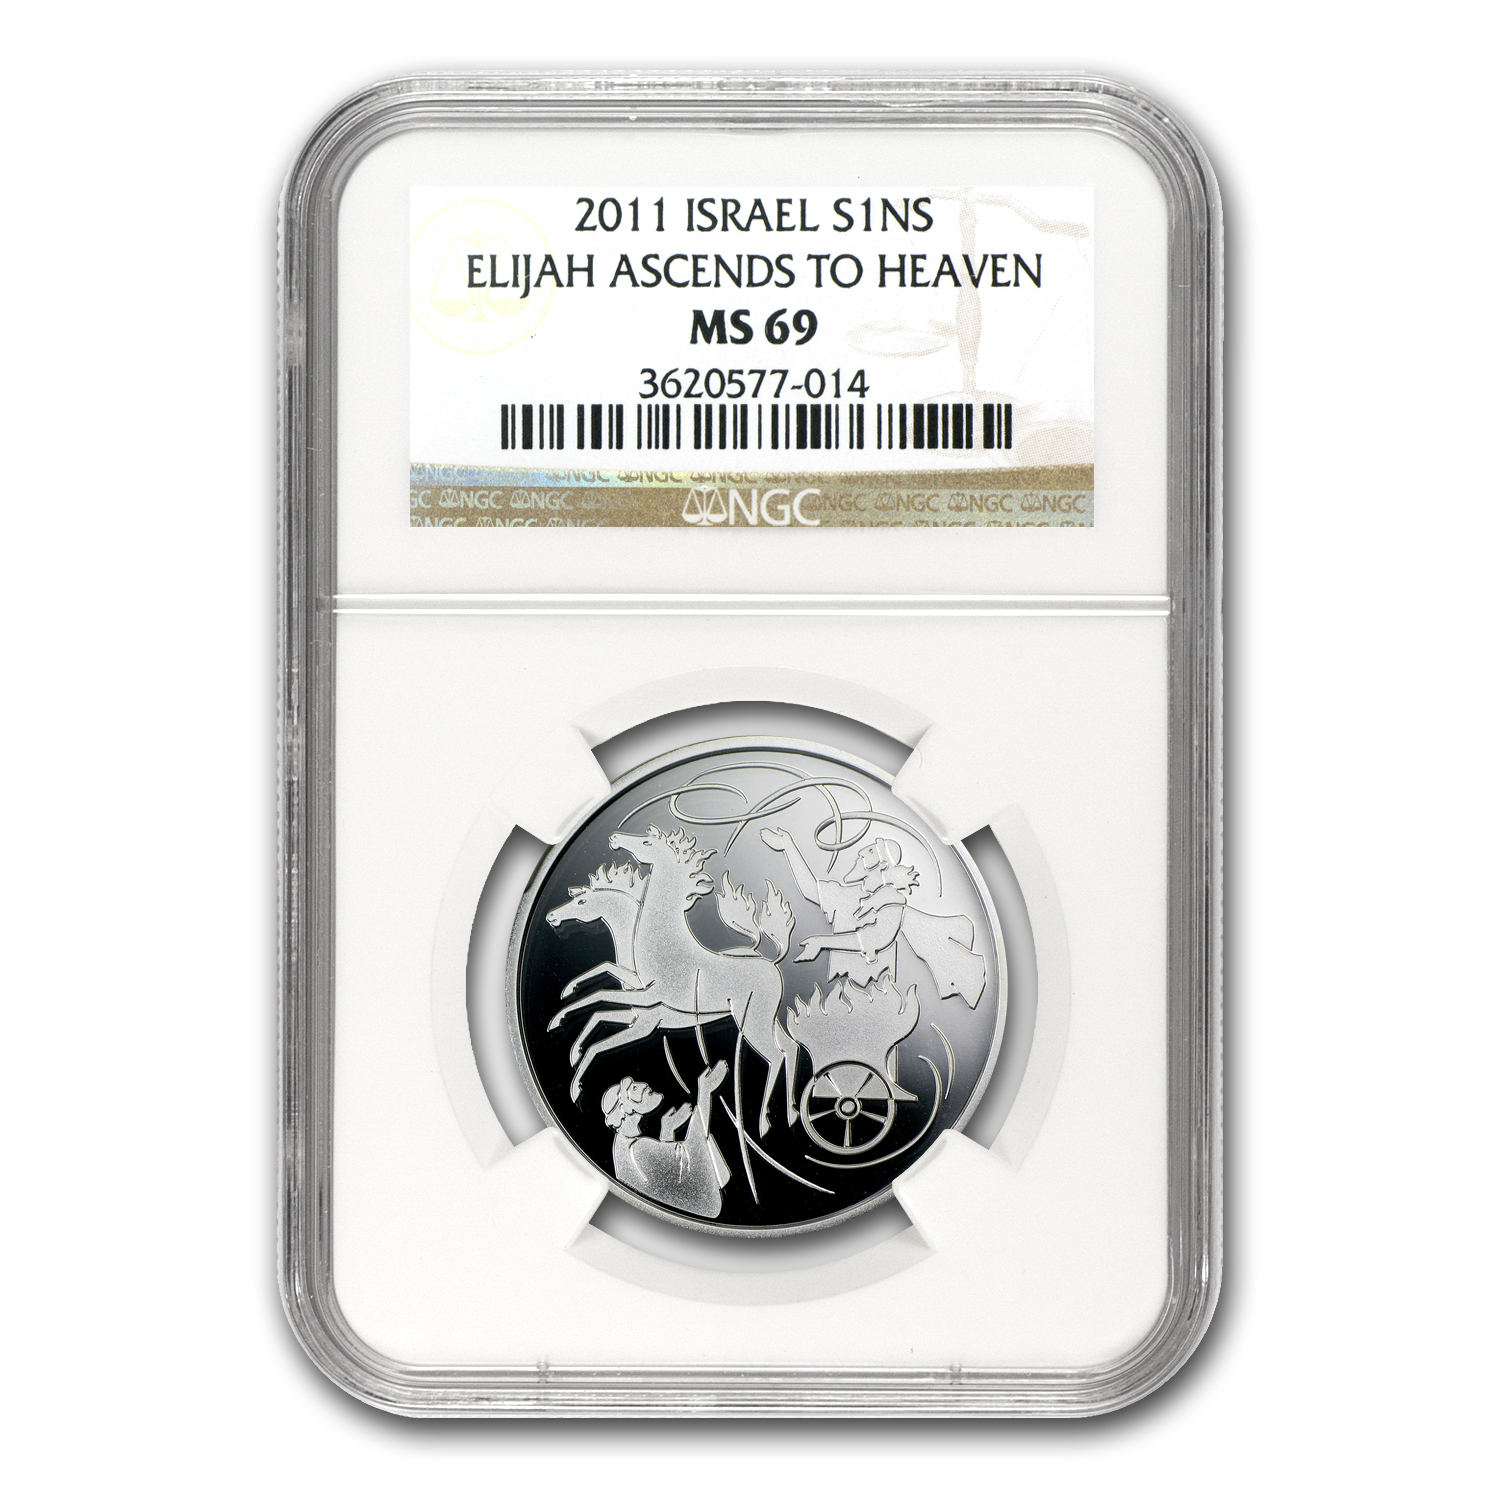 2009-11 Israel 3-Coin Silver 1 NIS Biblical Art Set MS-69 NGC